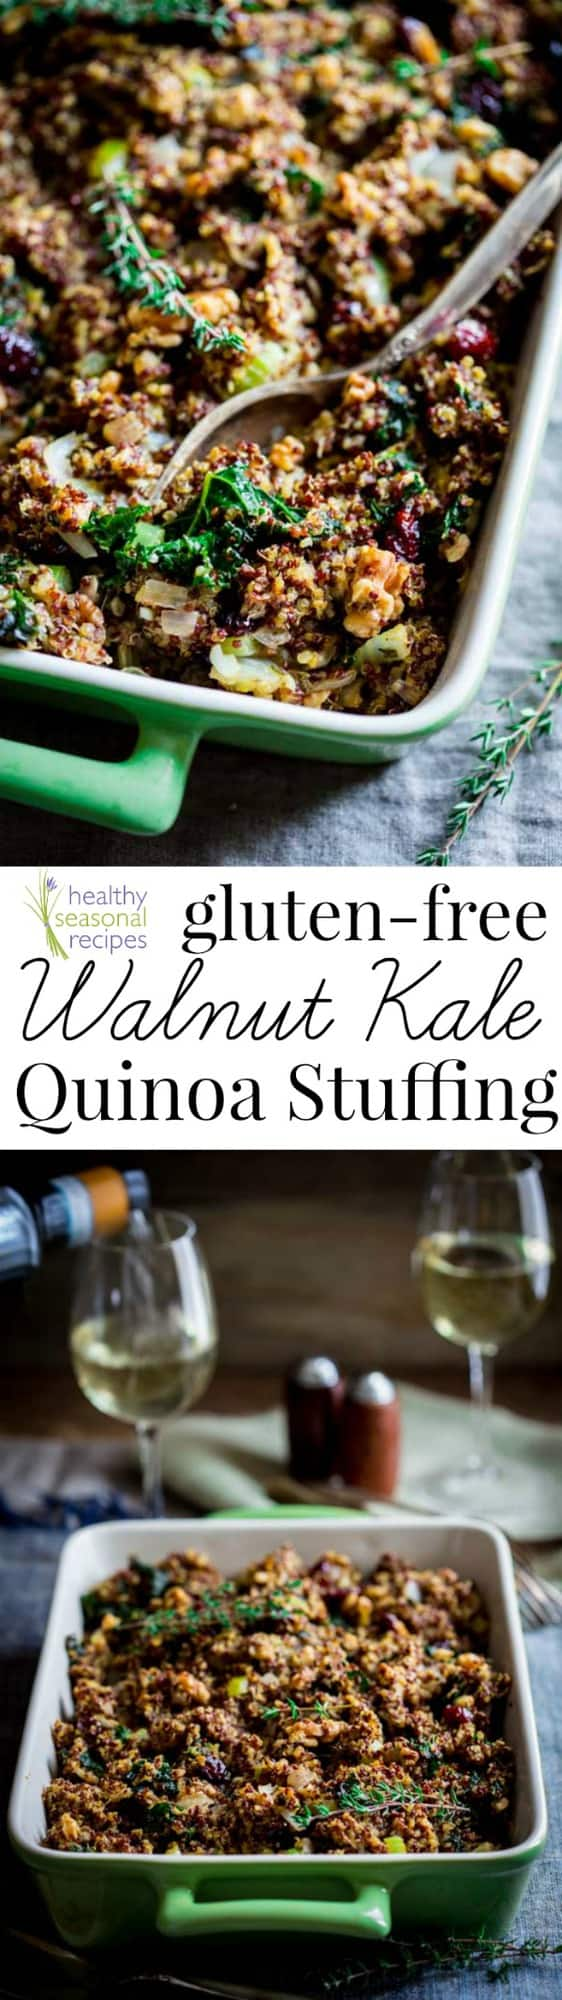 Gluten-free Stuffing with Walnuts, Kale, Quinoa and Dried Cranberries. It\'s a healthy gluten-free way to make Thanksgiving stuffing without bread!  on HealthySeasonalRecipes.com #thanksgiving #stuffing #dressing #glutenfree